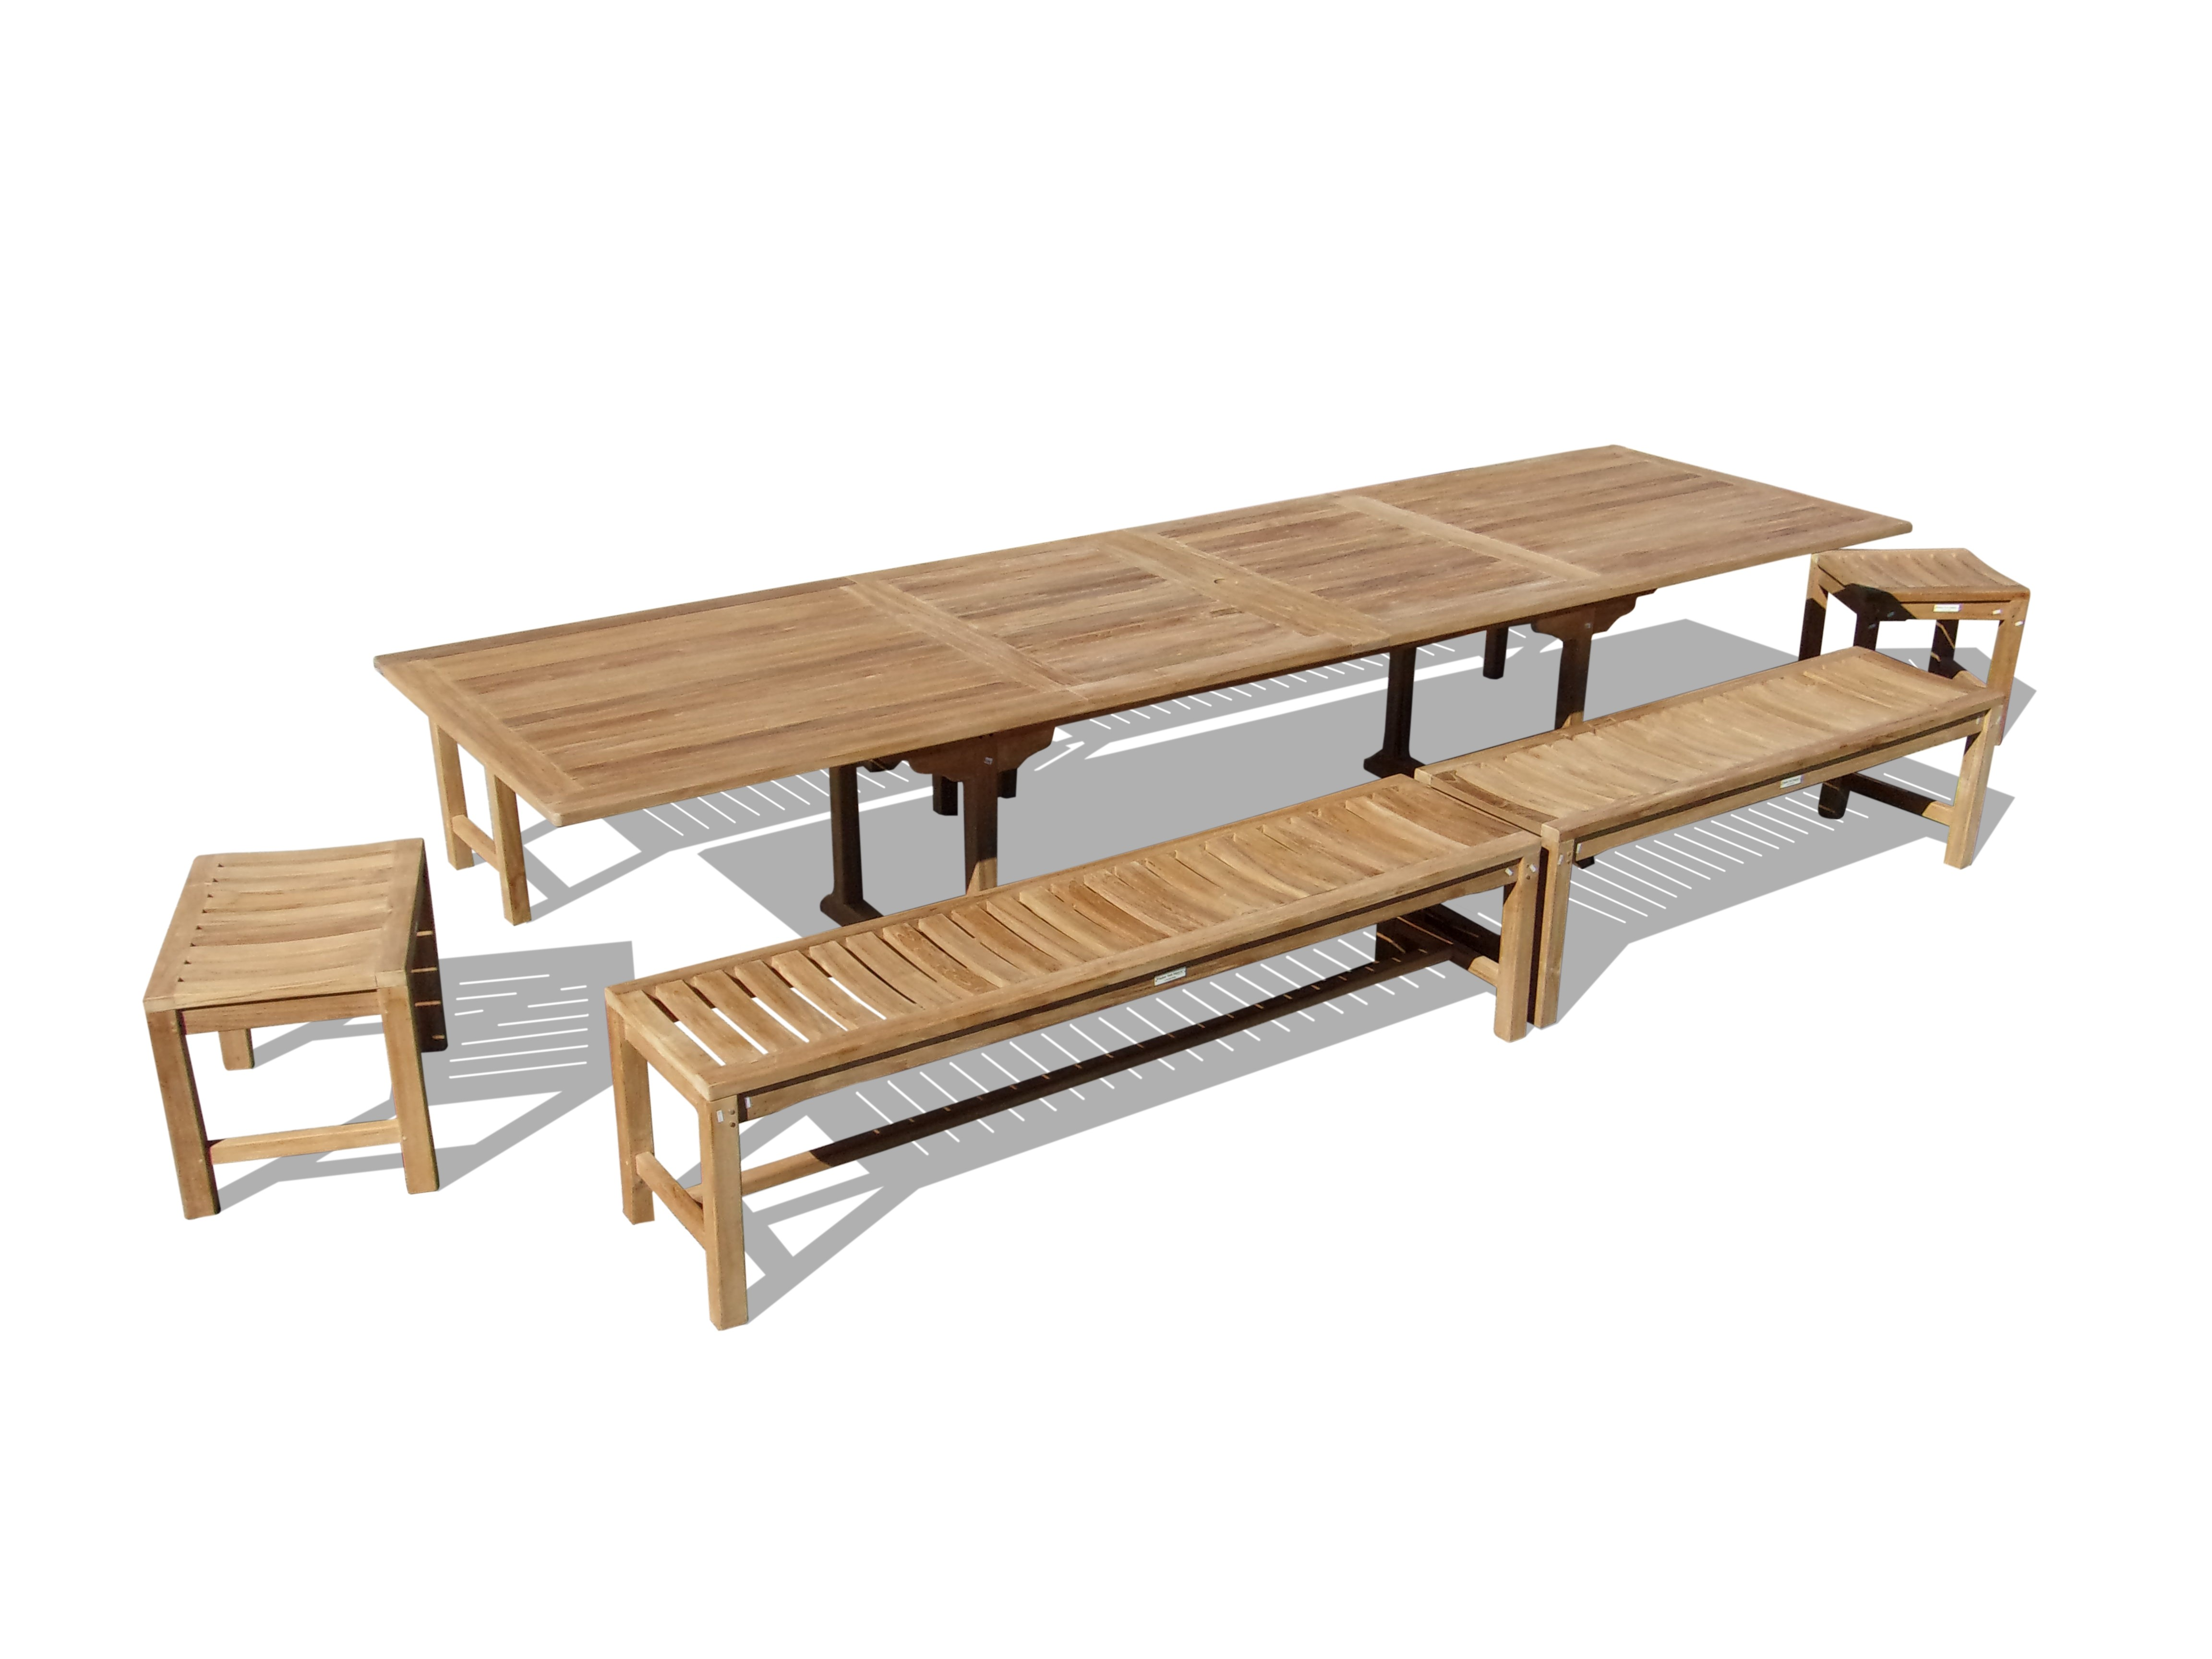 "Buckingham 138"" x 39"" (11 1/2 Feet Long) Double Leaf Rectangular Extension Table w/6 Backless Benches...Seats 16 Adults"